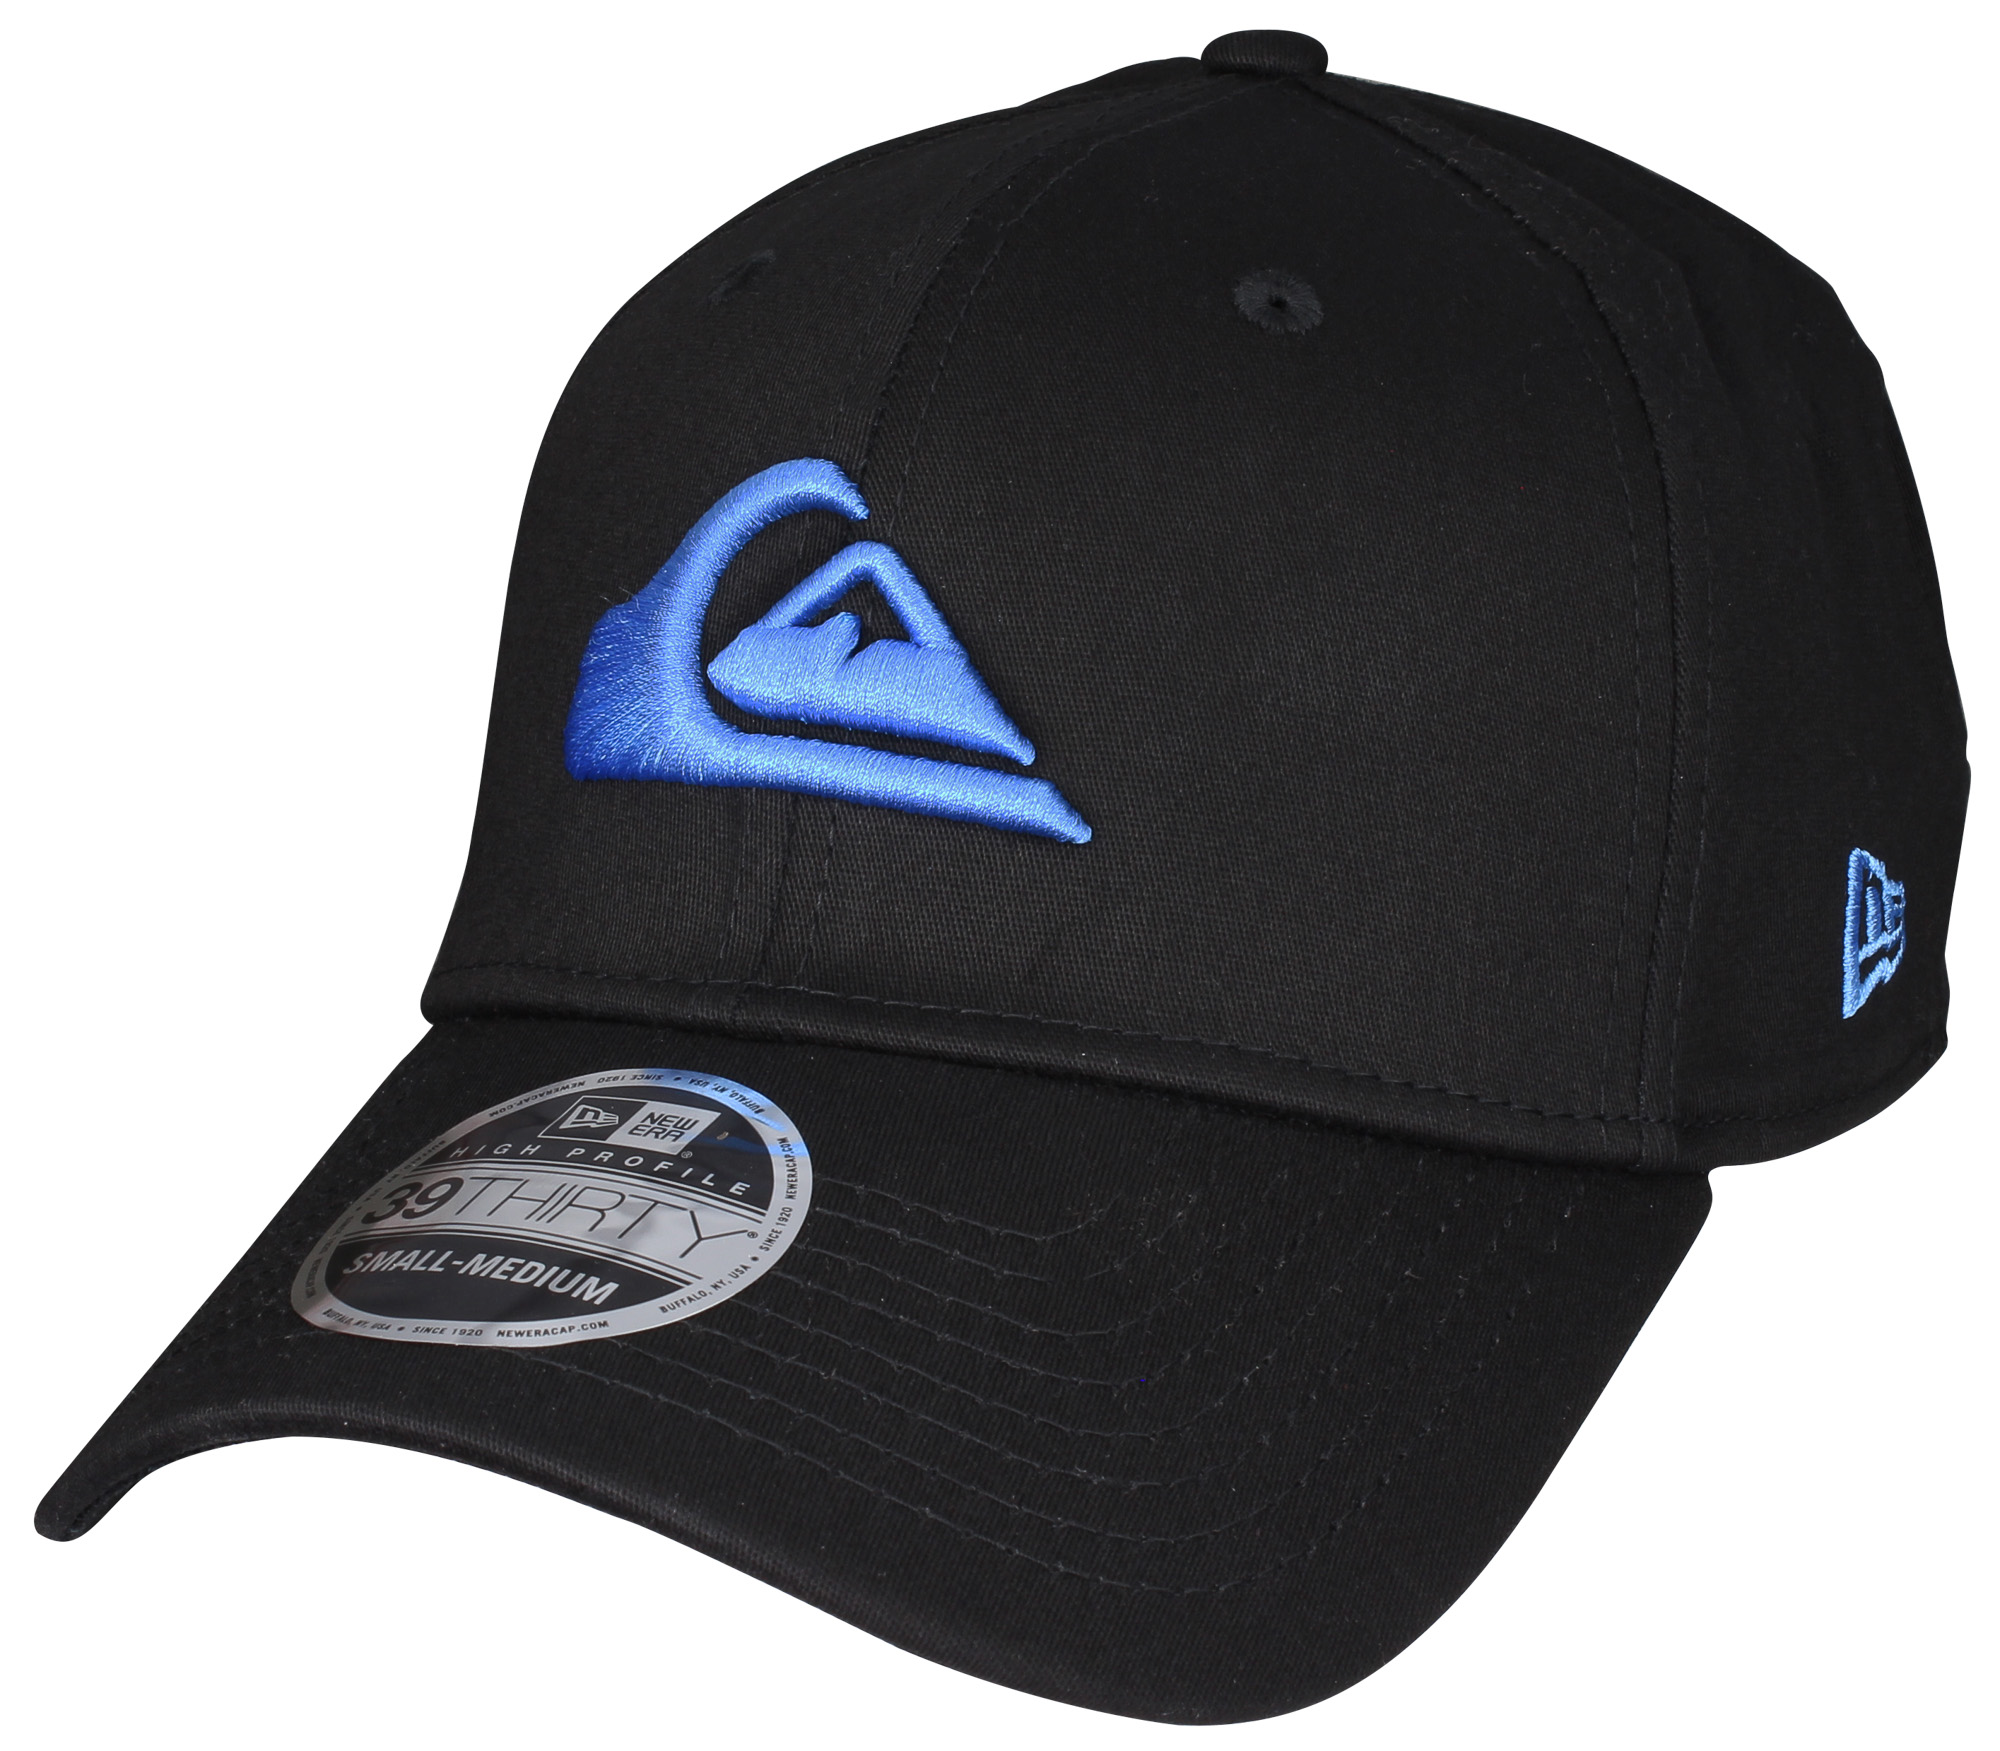 Quiksilver Mountain and Wave Hat Malibu Blue New